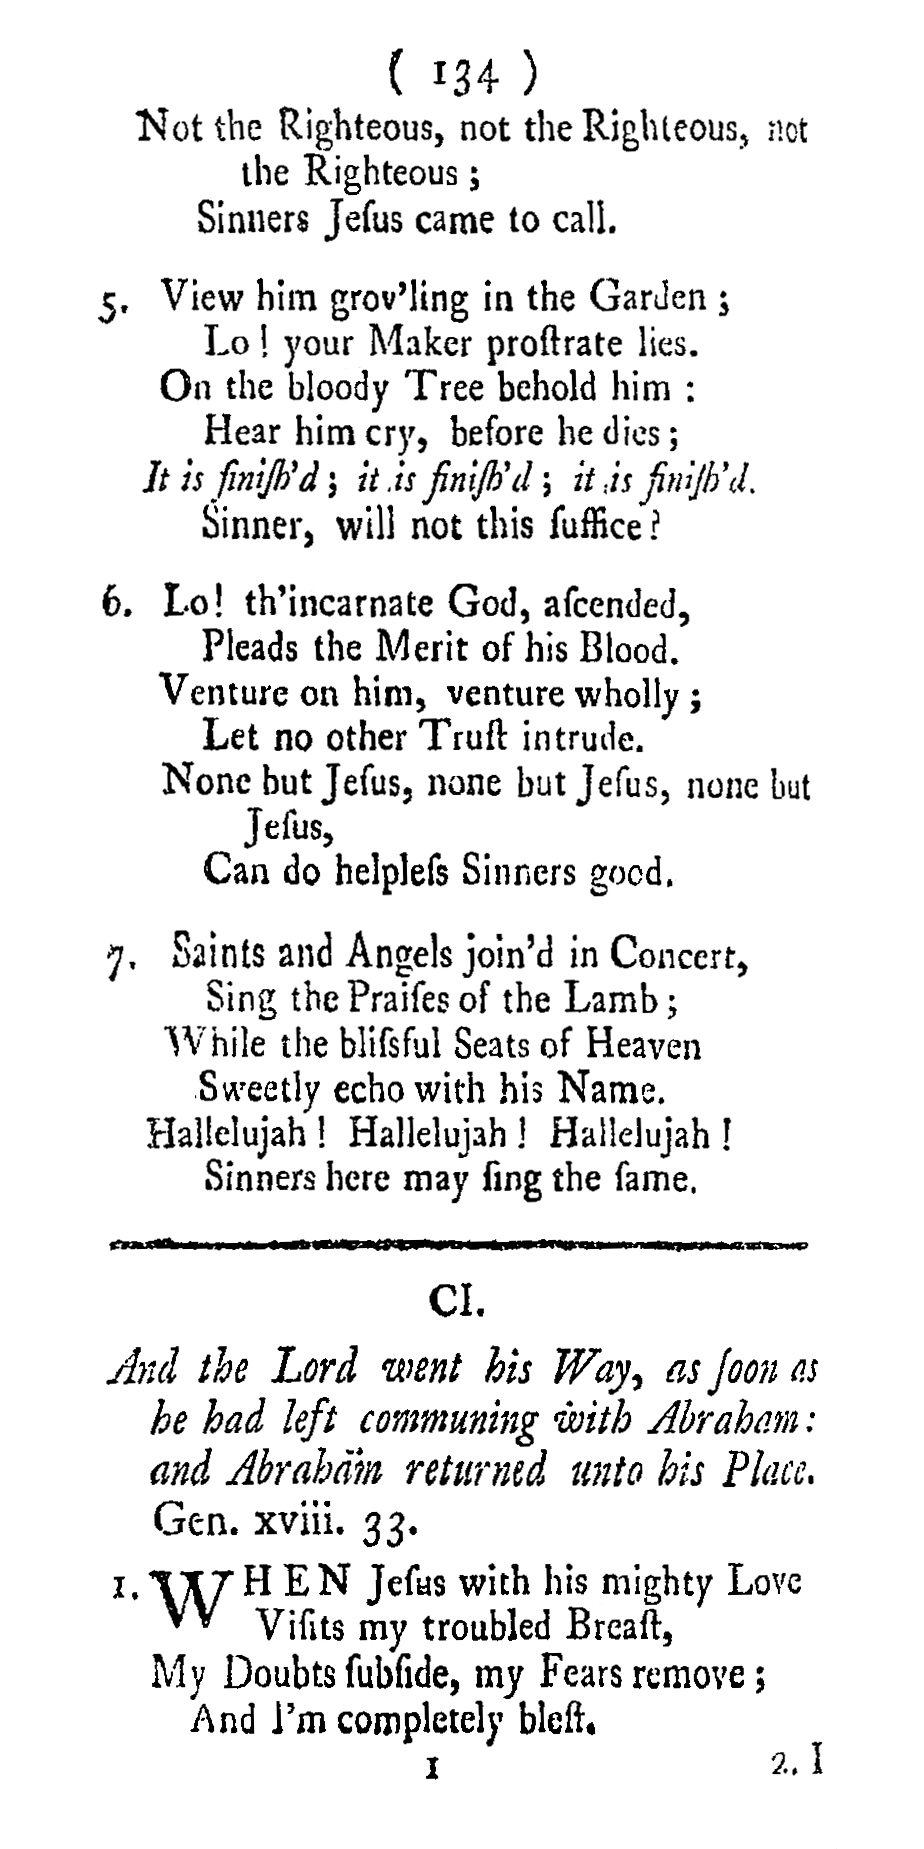 Fig. 1.  Joseph Hart,  Hymns, &c., Composed on Various Subjects  (London: J. Everingham, 1759).